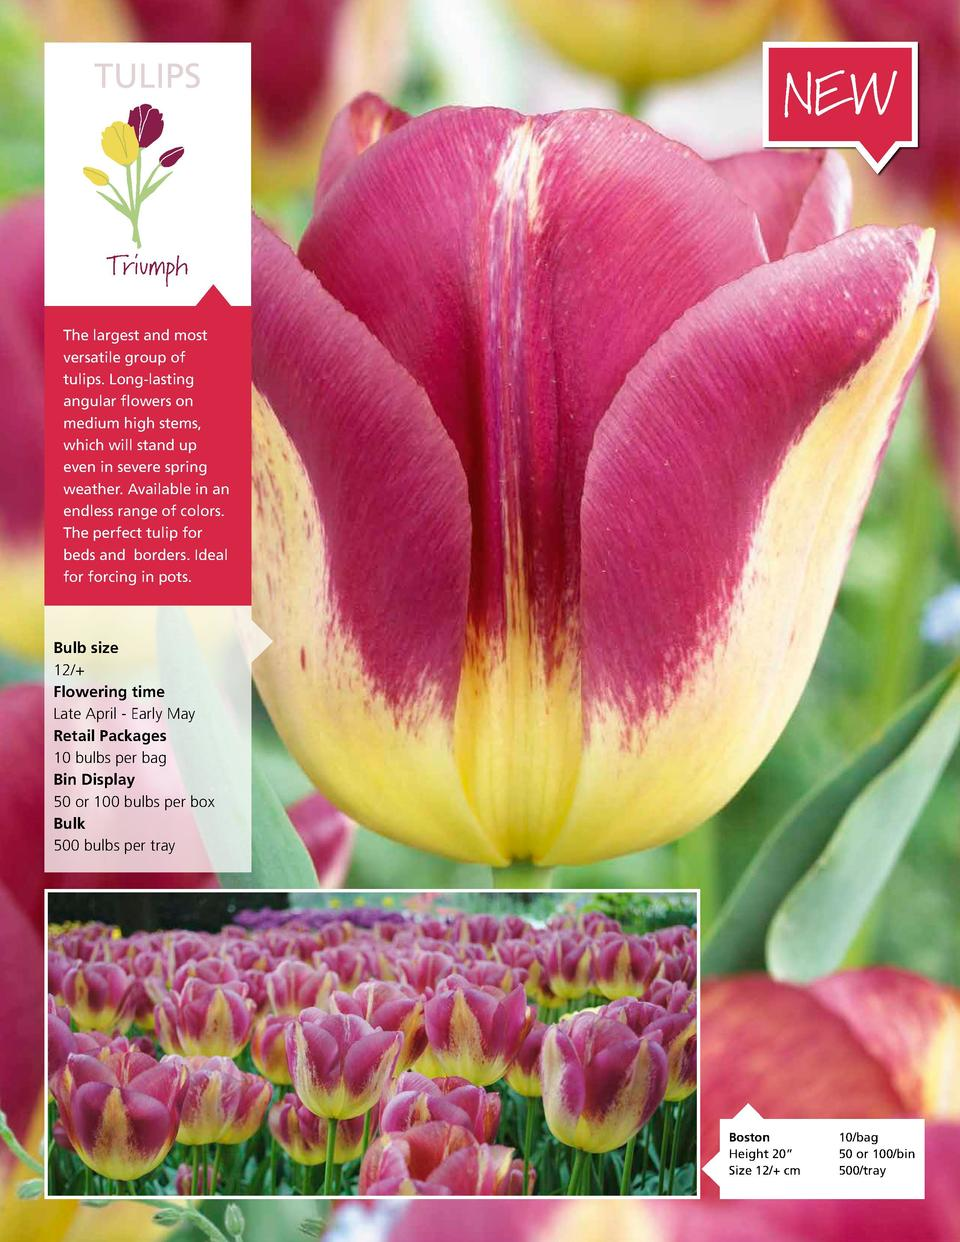 TULIPS  NEW  Triumph The largest and most versatile group of tulips. Long-lasting angular flowers on medium high stems, wh...